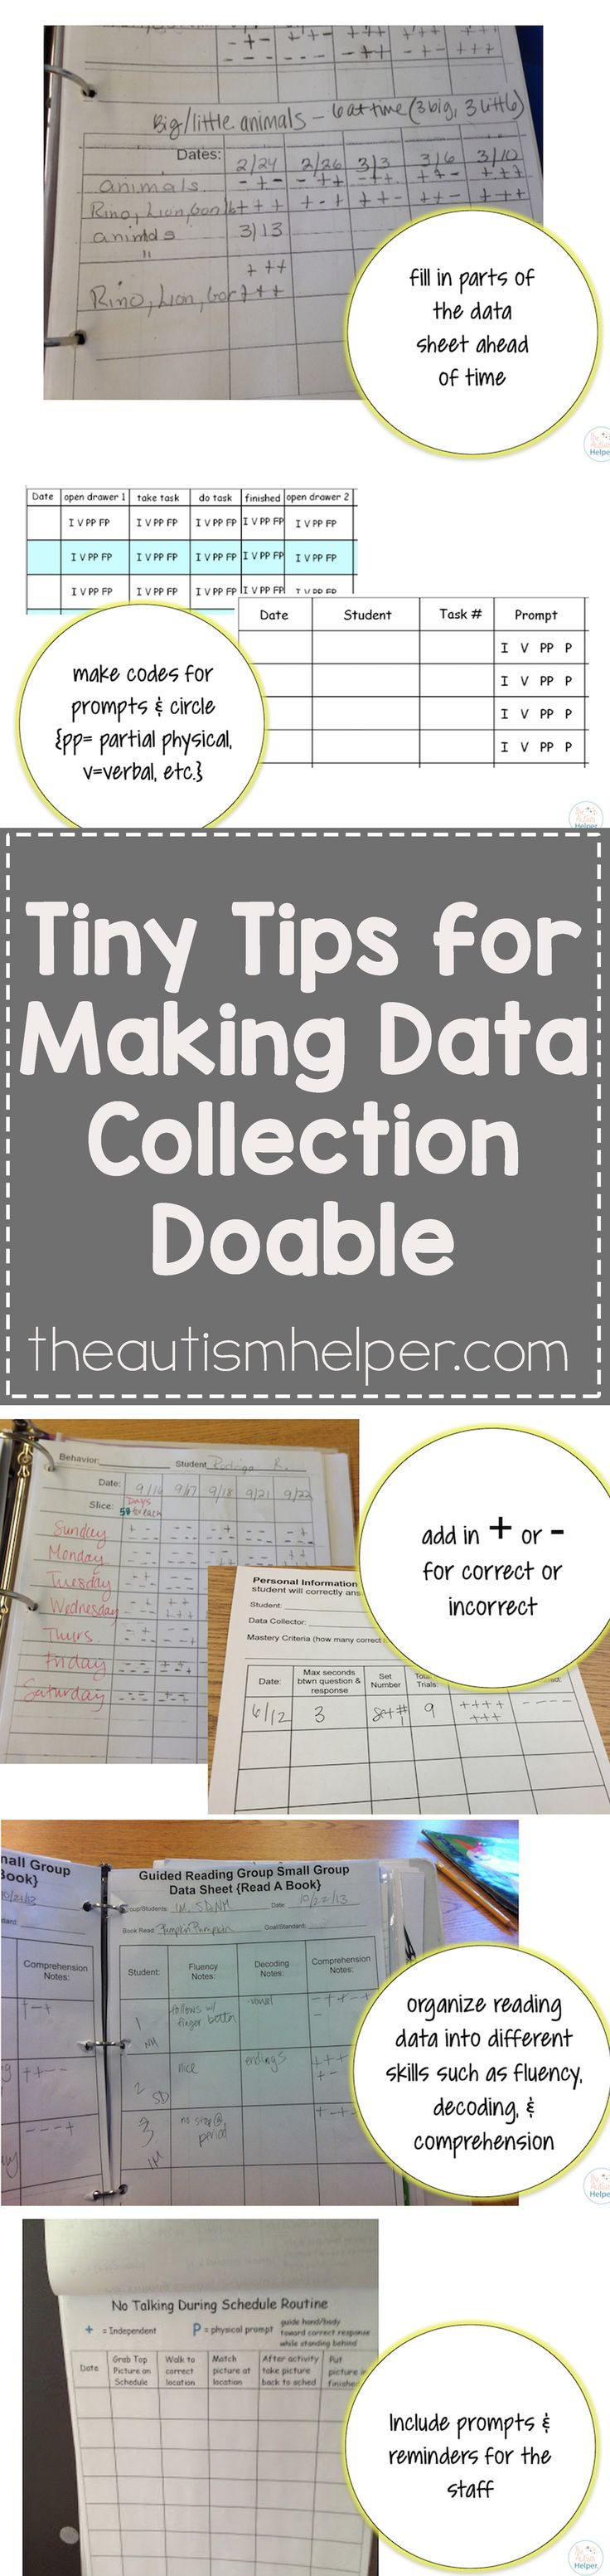 If data collection isn't easy, you won't do it. So keep it simple, basic & straightforward with our tips! From theautismhelper.com #theautismhelper